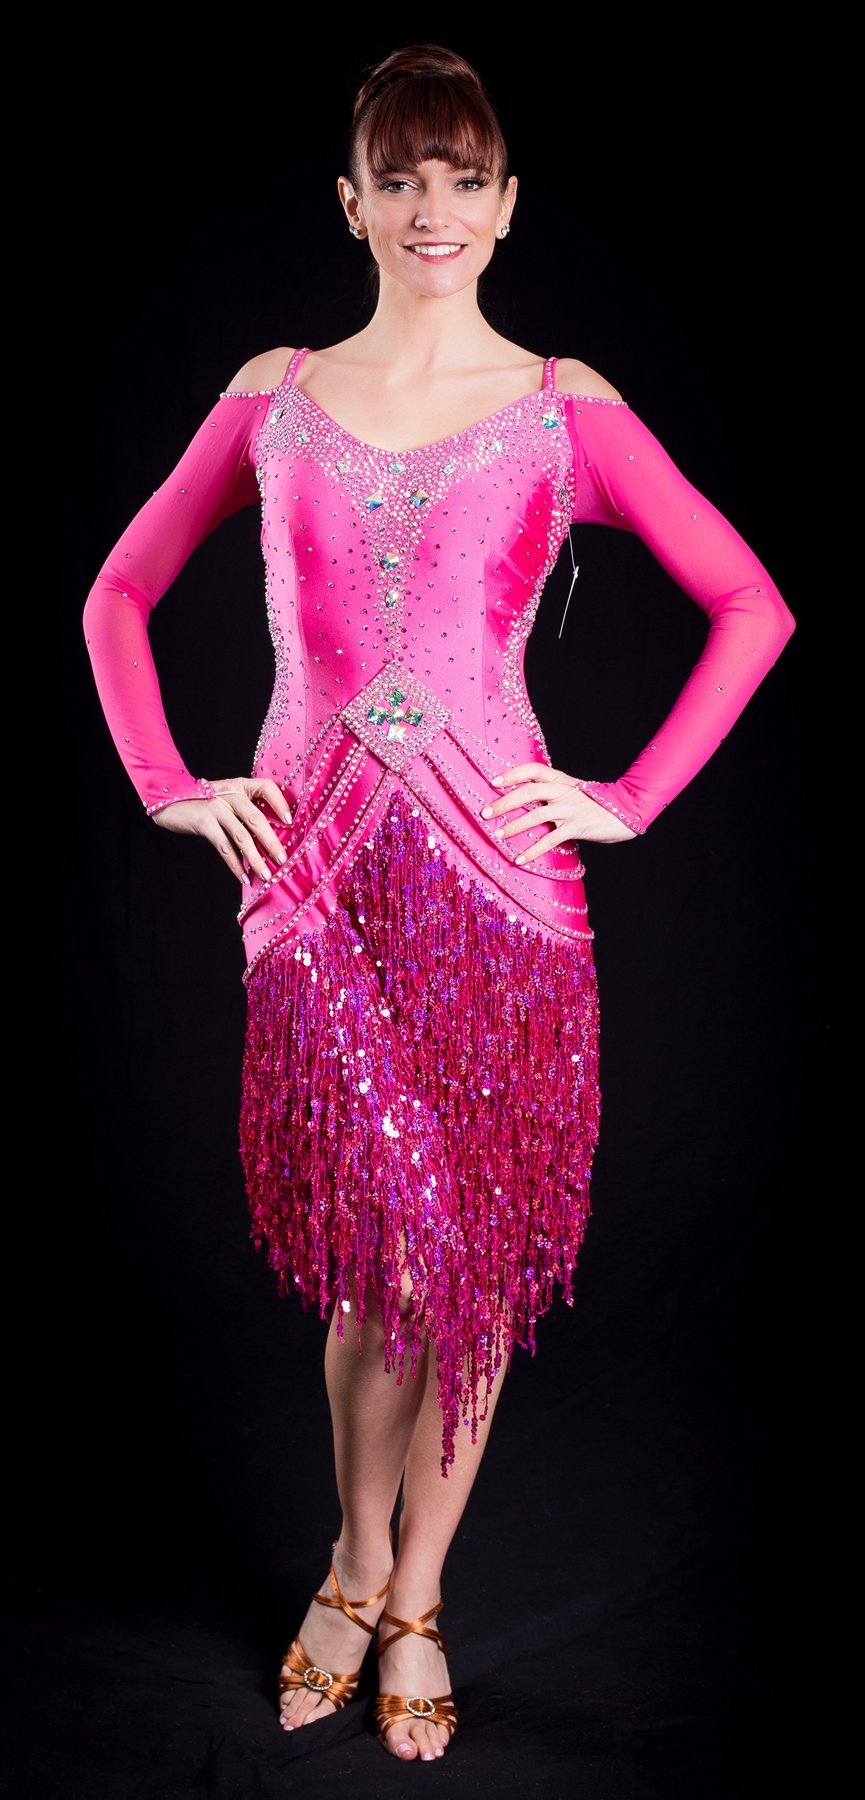 Fun Hot Pink Sequin Fringe Latin Dress